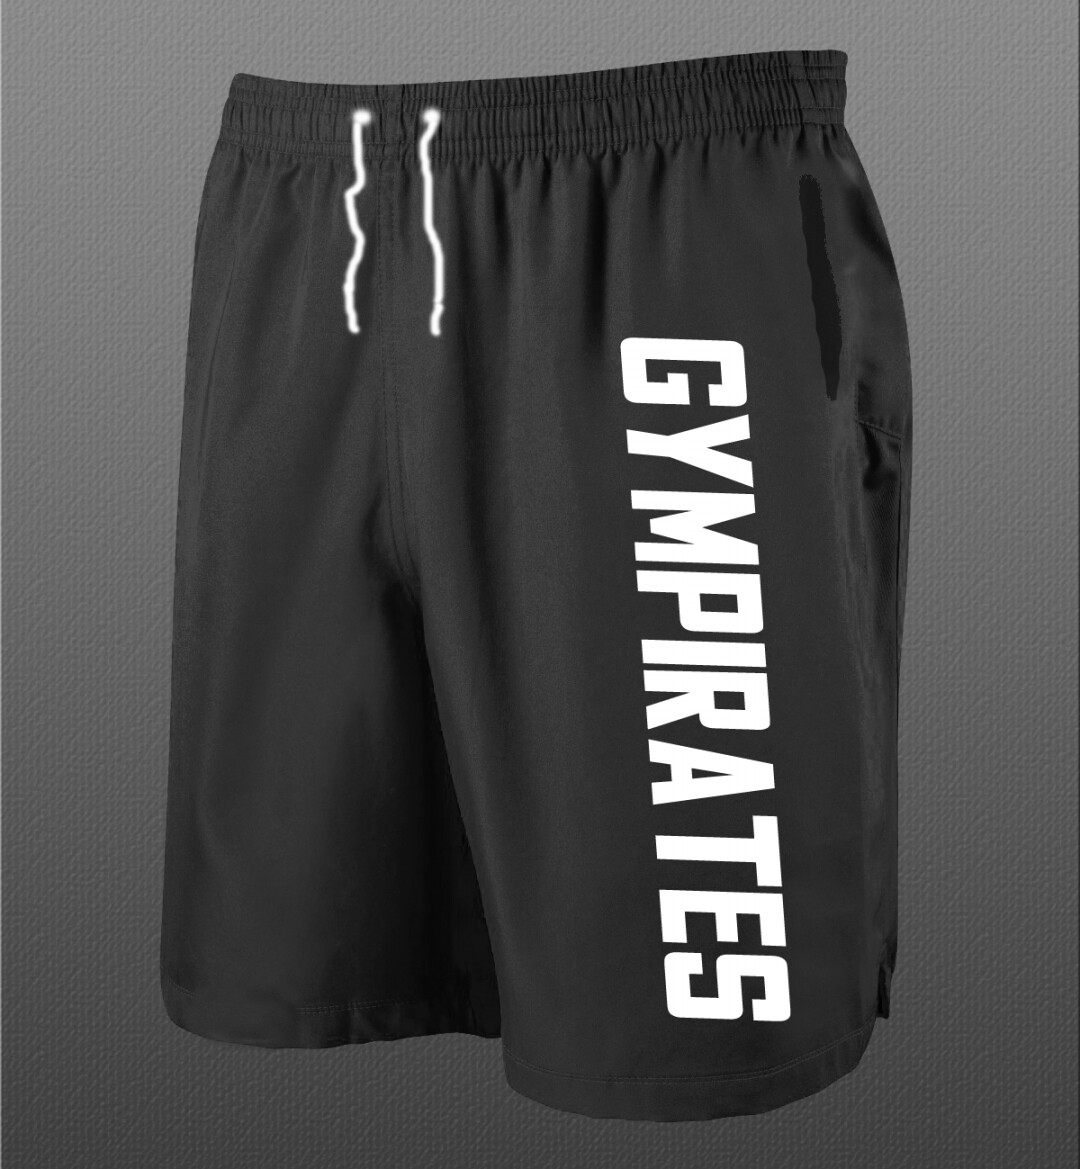 Gympirates Warrior Shorts - Black